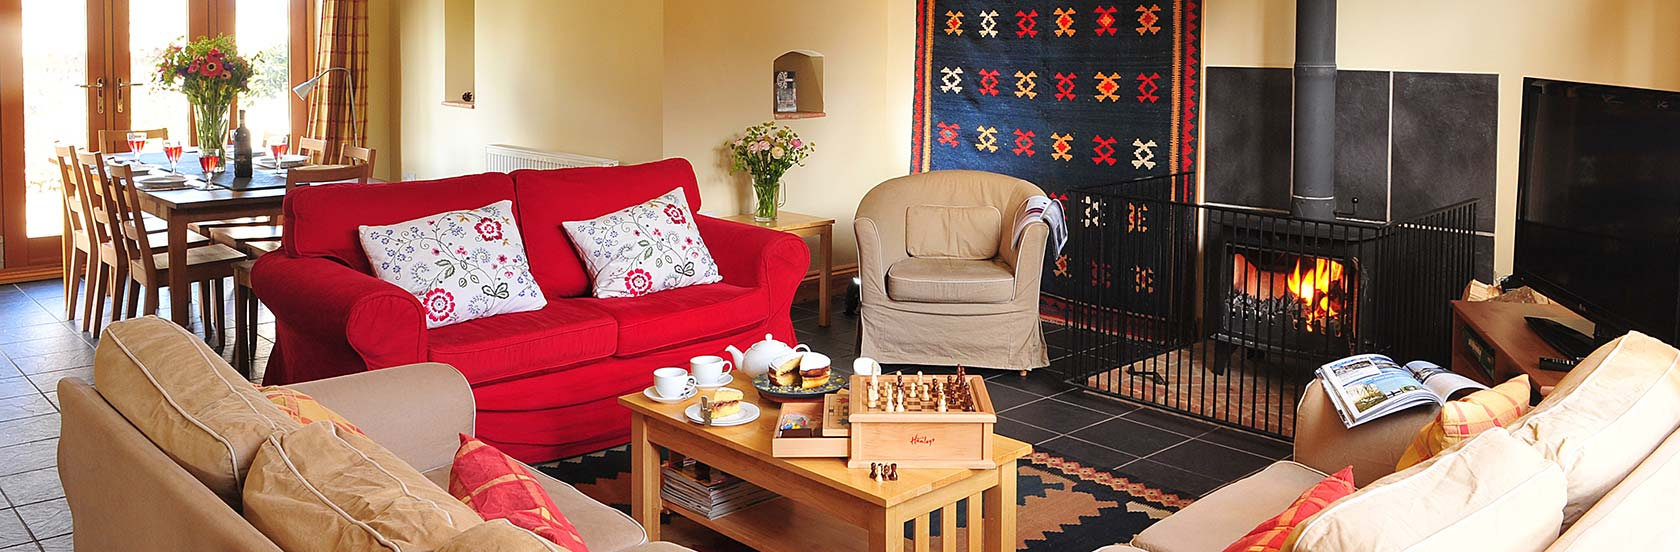 Chaff House, Rookery Farm Holiday Accommodation, north Norfolk